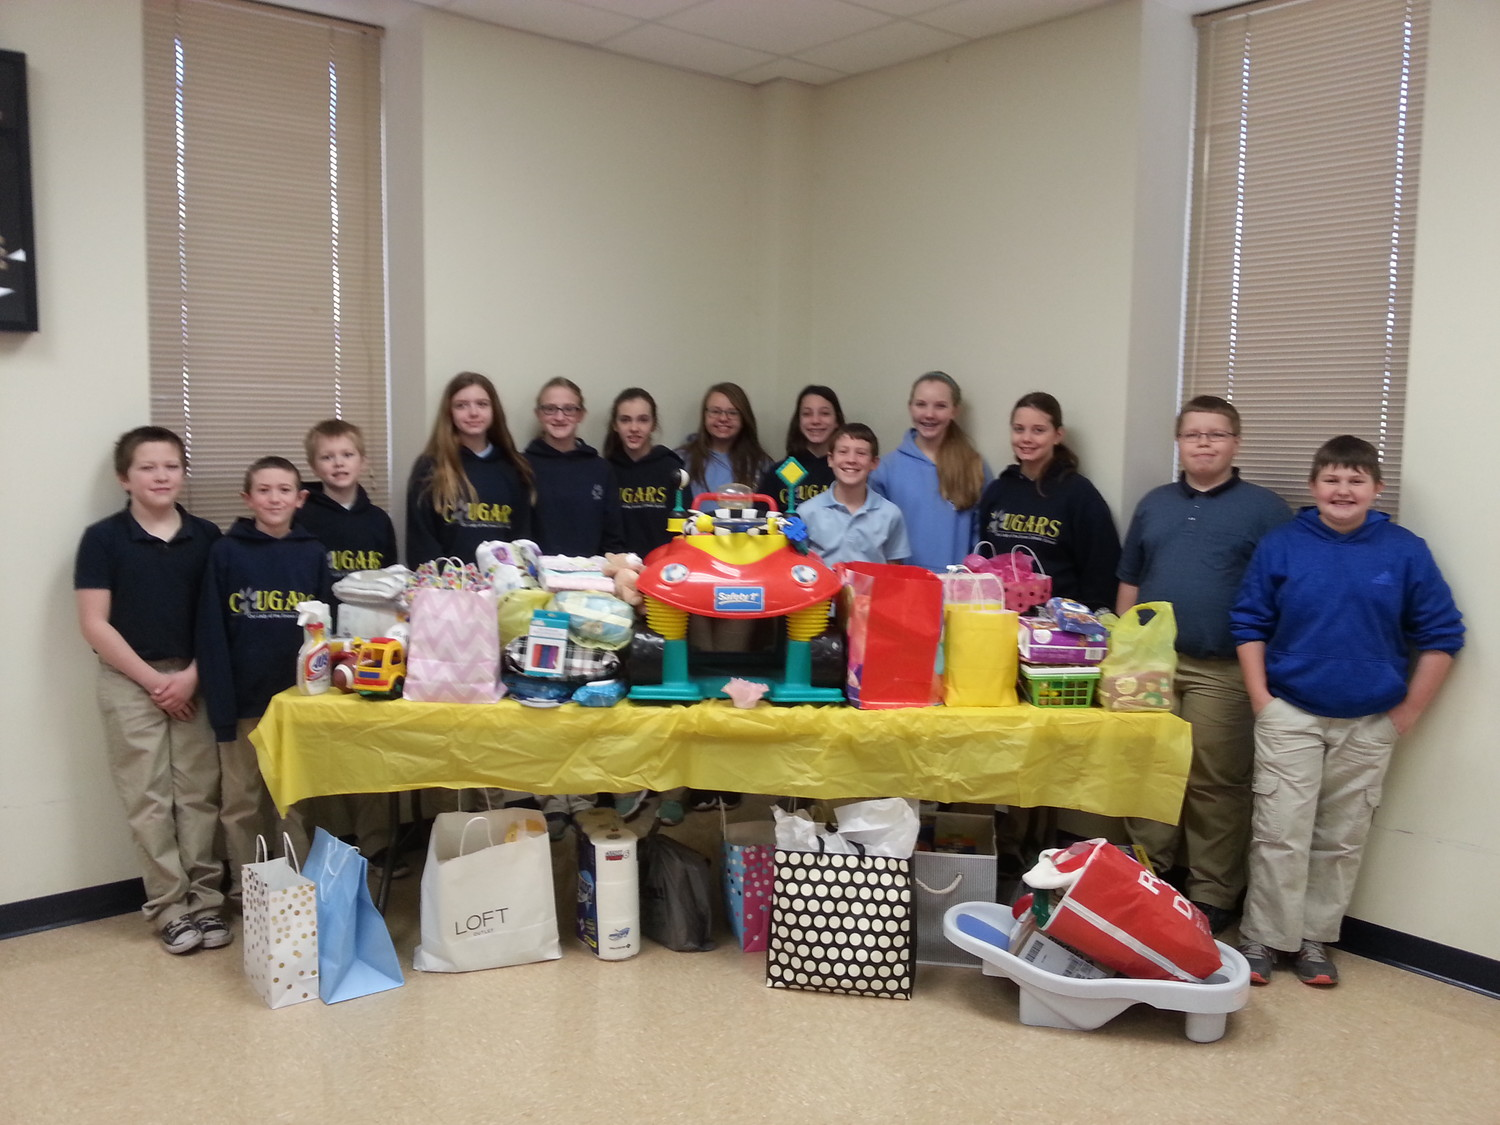 Members of the student council of Our Lady of Lourdes Interparish School in Columbia display the